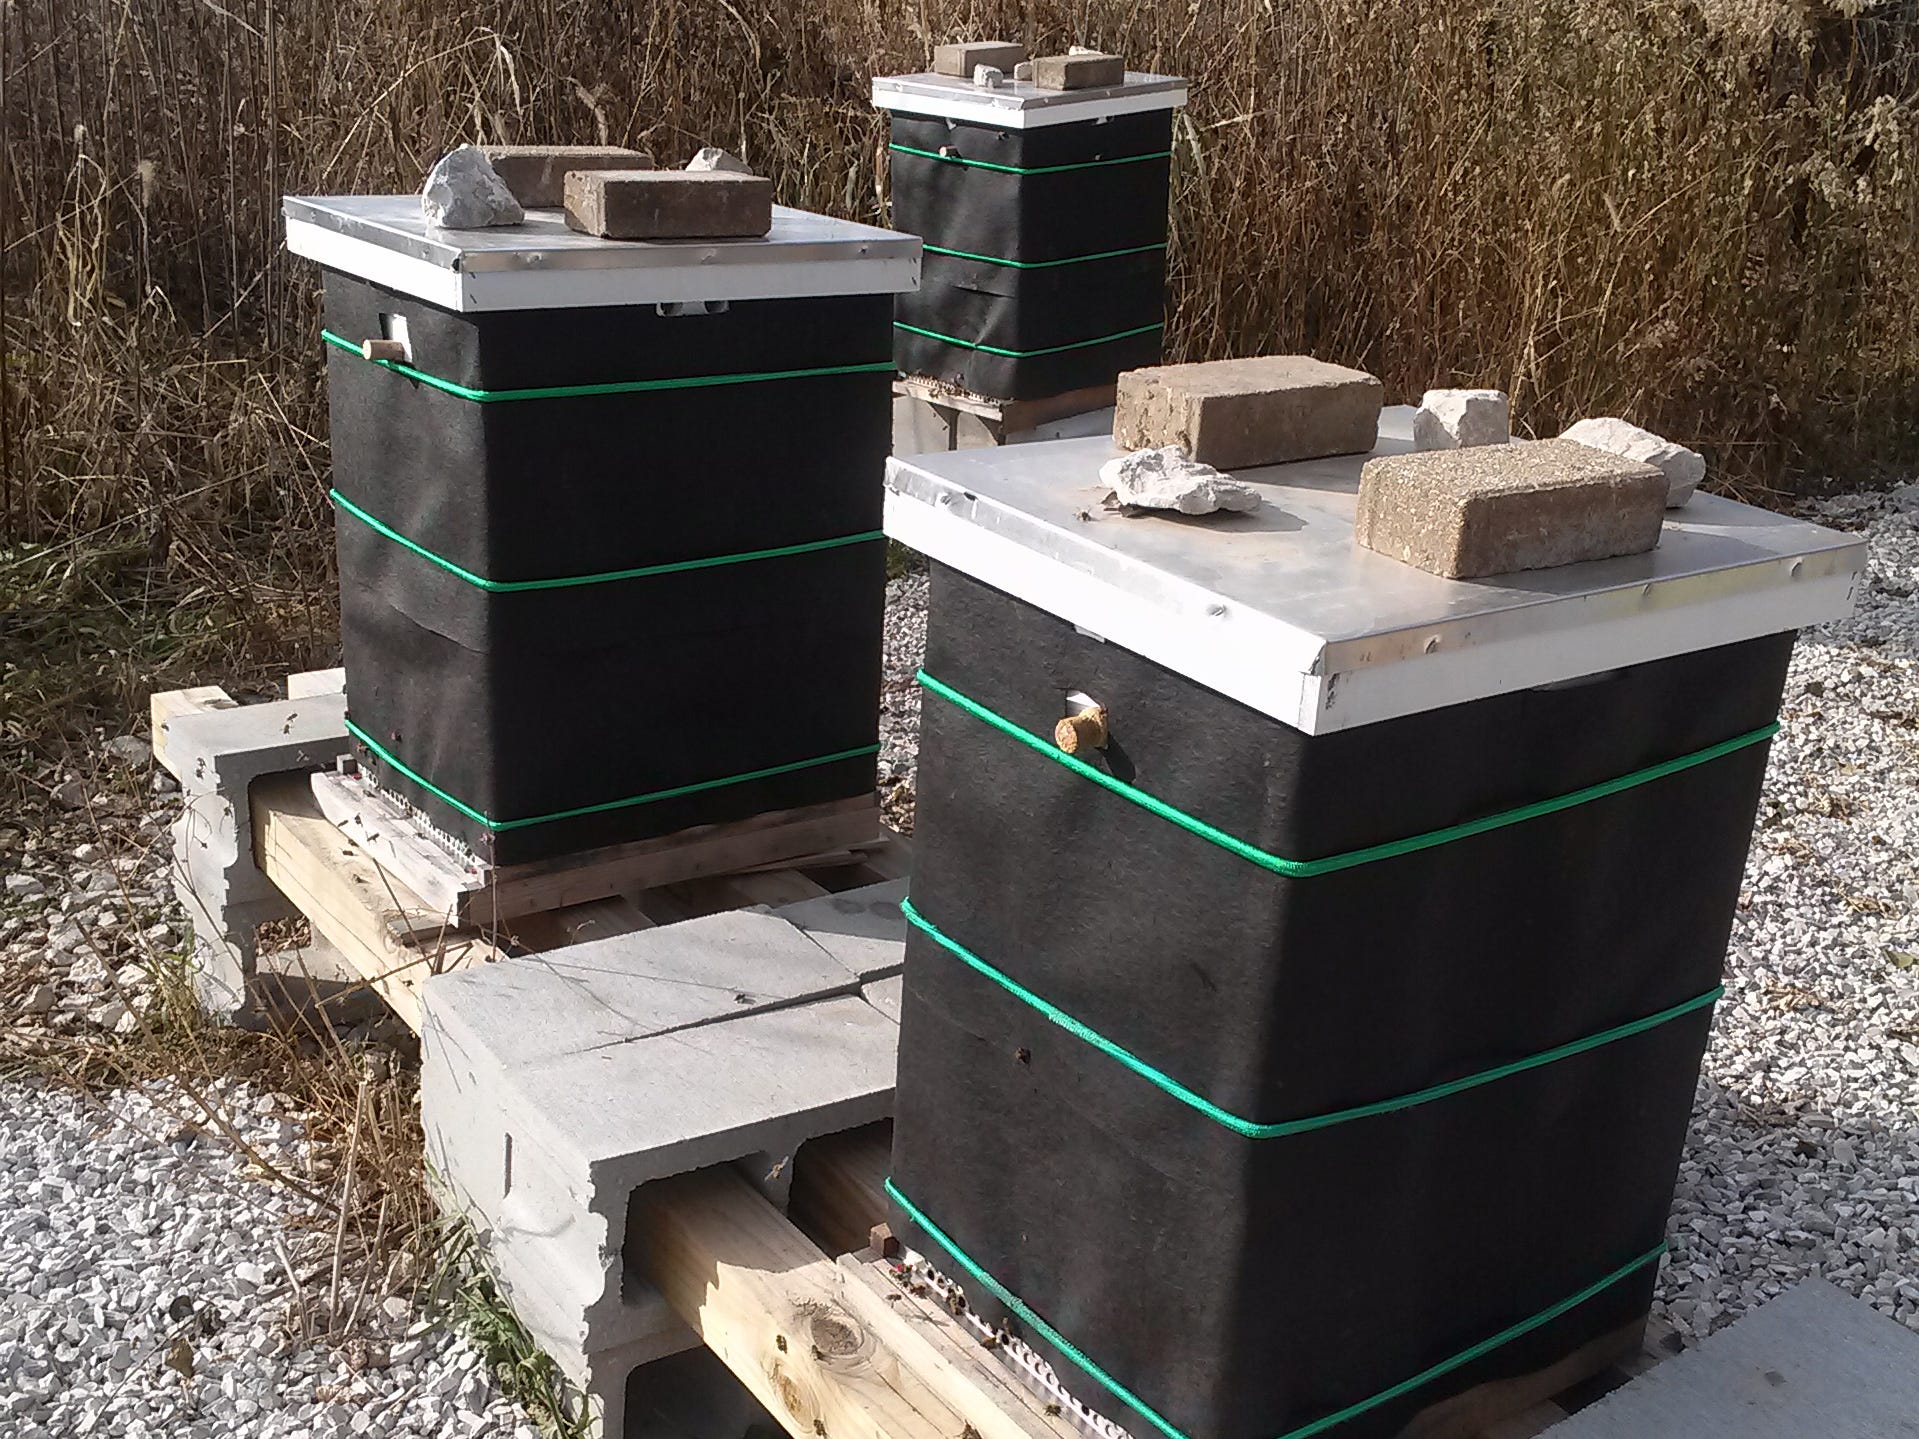 This is how hives look when winterized, wrapped in roofing felt (tar paper), with a quilting box and shim for winter feeding added atop the two brood boxes, plus a mouse guard at the entrance.